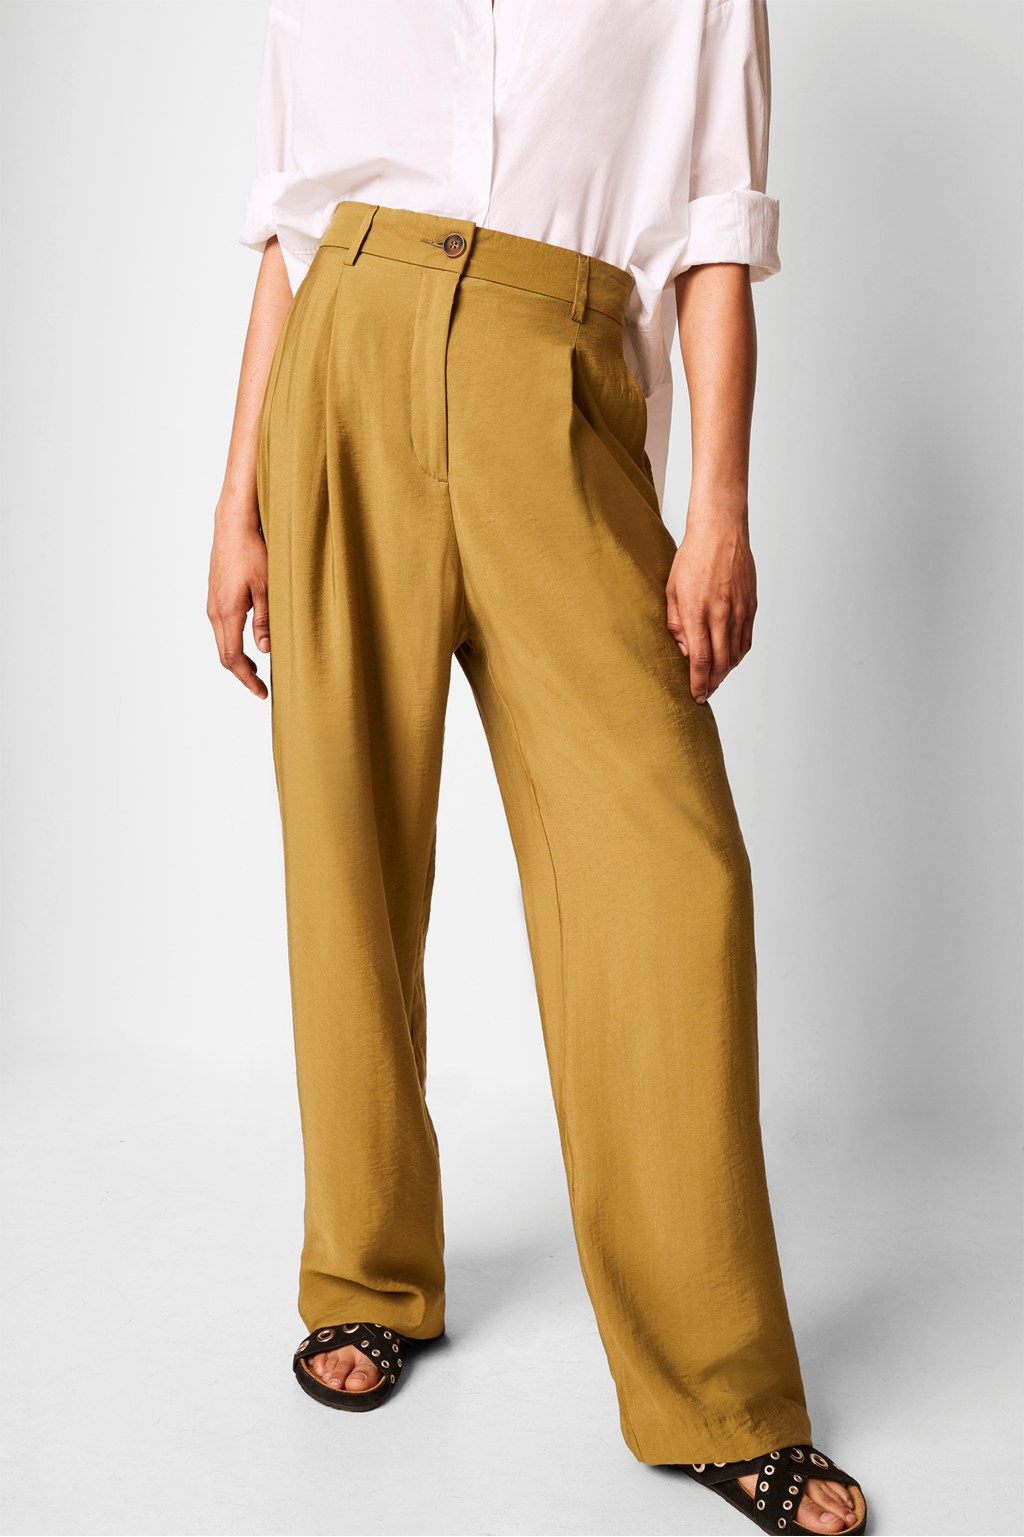 BREKHNA DRAPE WIDE LEG TROUSER by french connection, available on frenchconnection.com for EUR44 Gigi Hadid Pants Exact Product